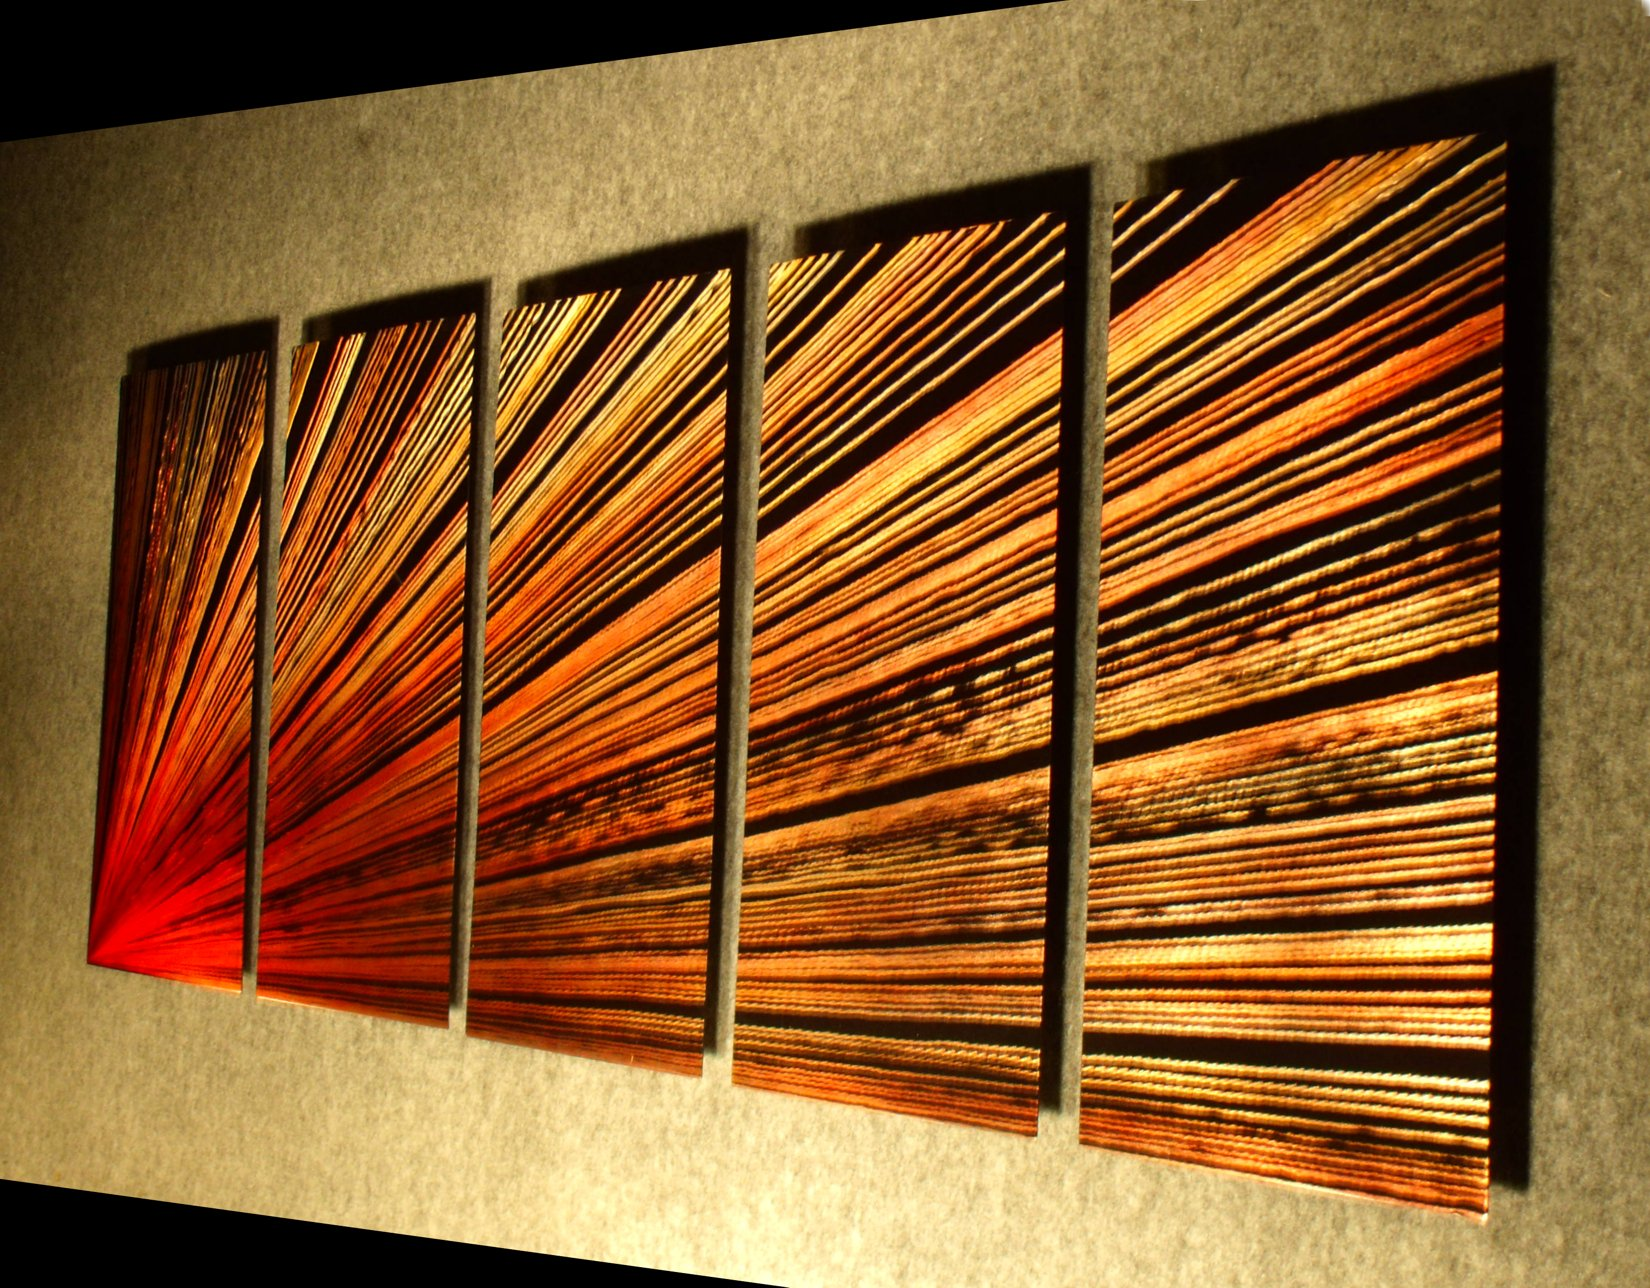 Pulsar left- 64 inch X 24 inch Abstract Painting Metal Wall Art by Nider the Internationally Acclaimed Artist of Modern Contemporary Decor Artwork by NiderArt